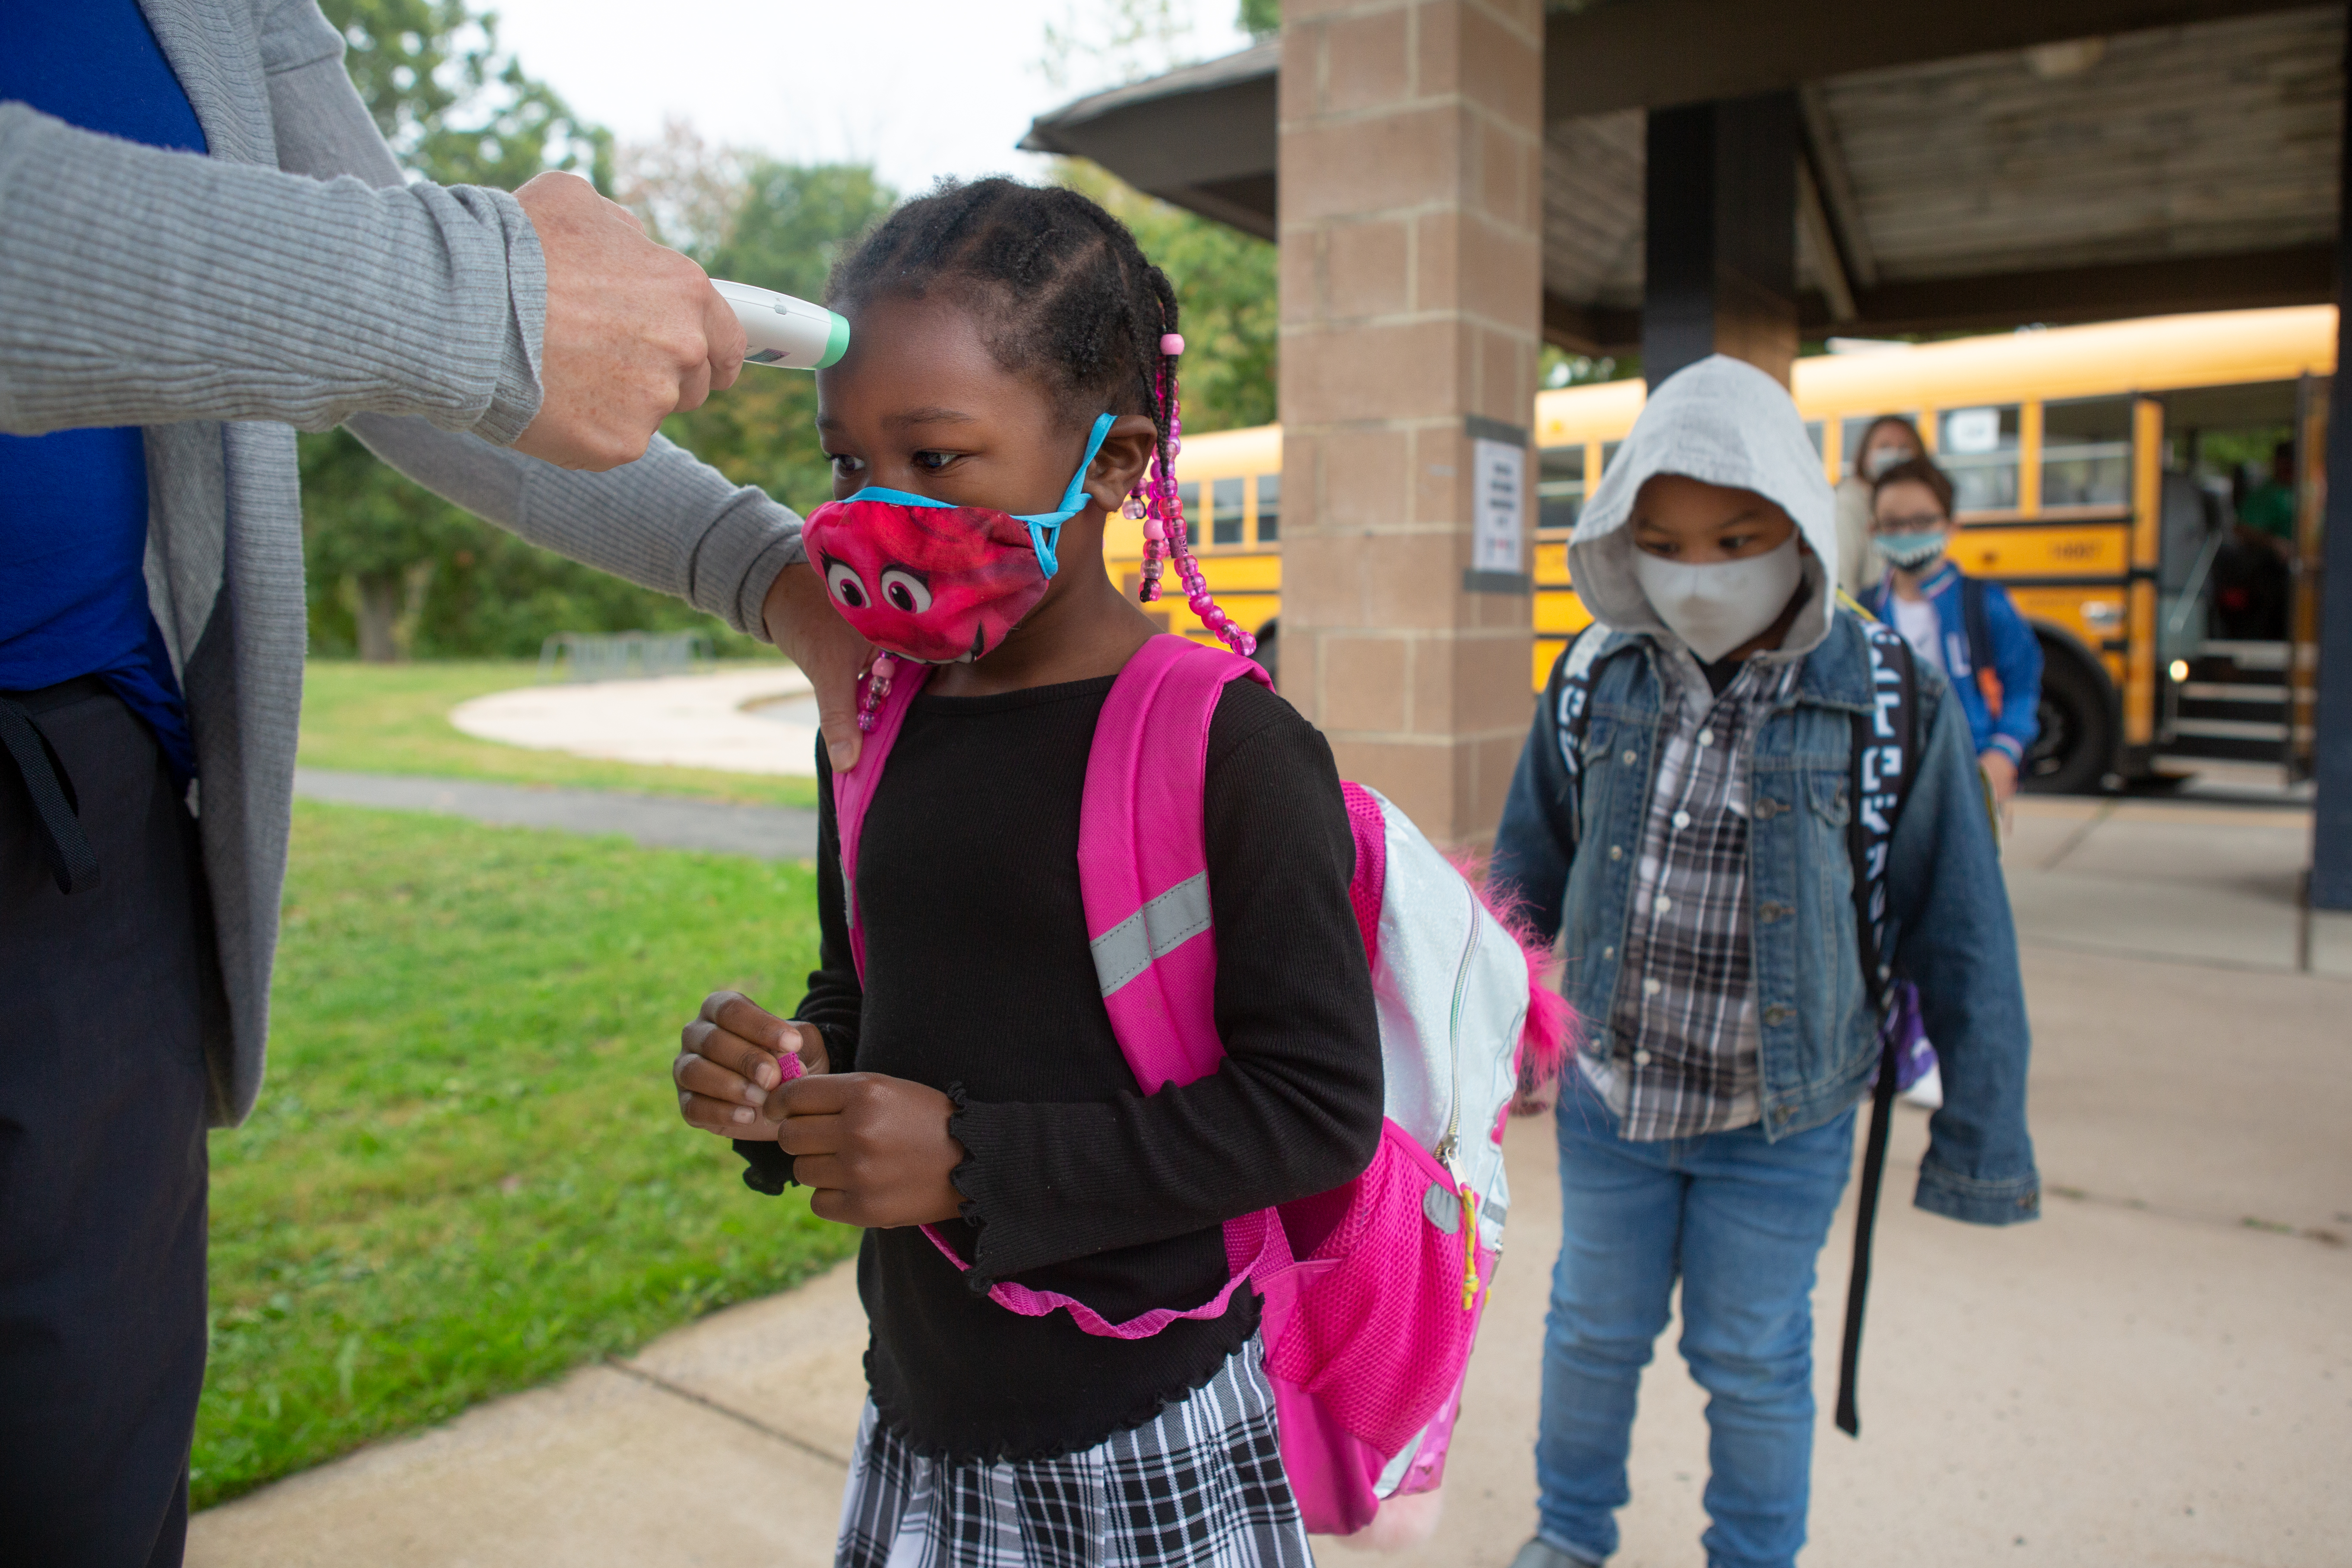 With a school bus in the background, students wearing masks and walking on a walkway receive temperature checks